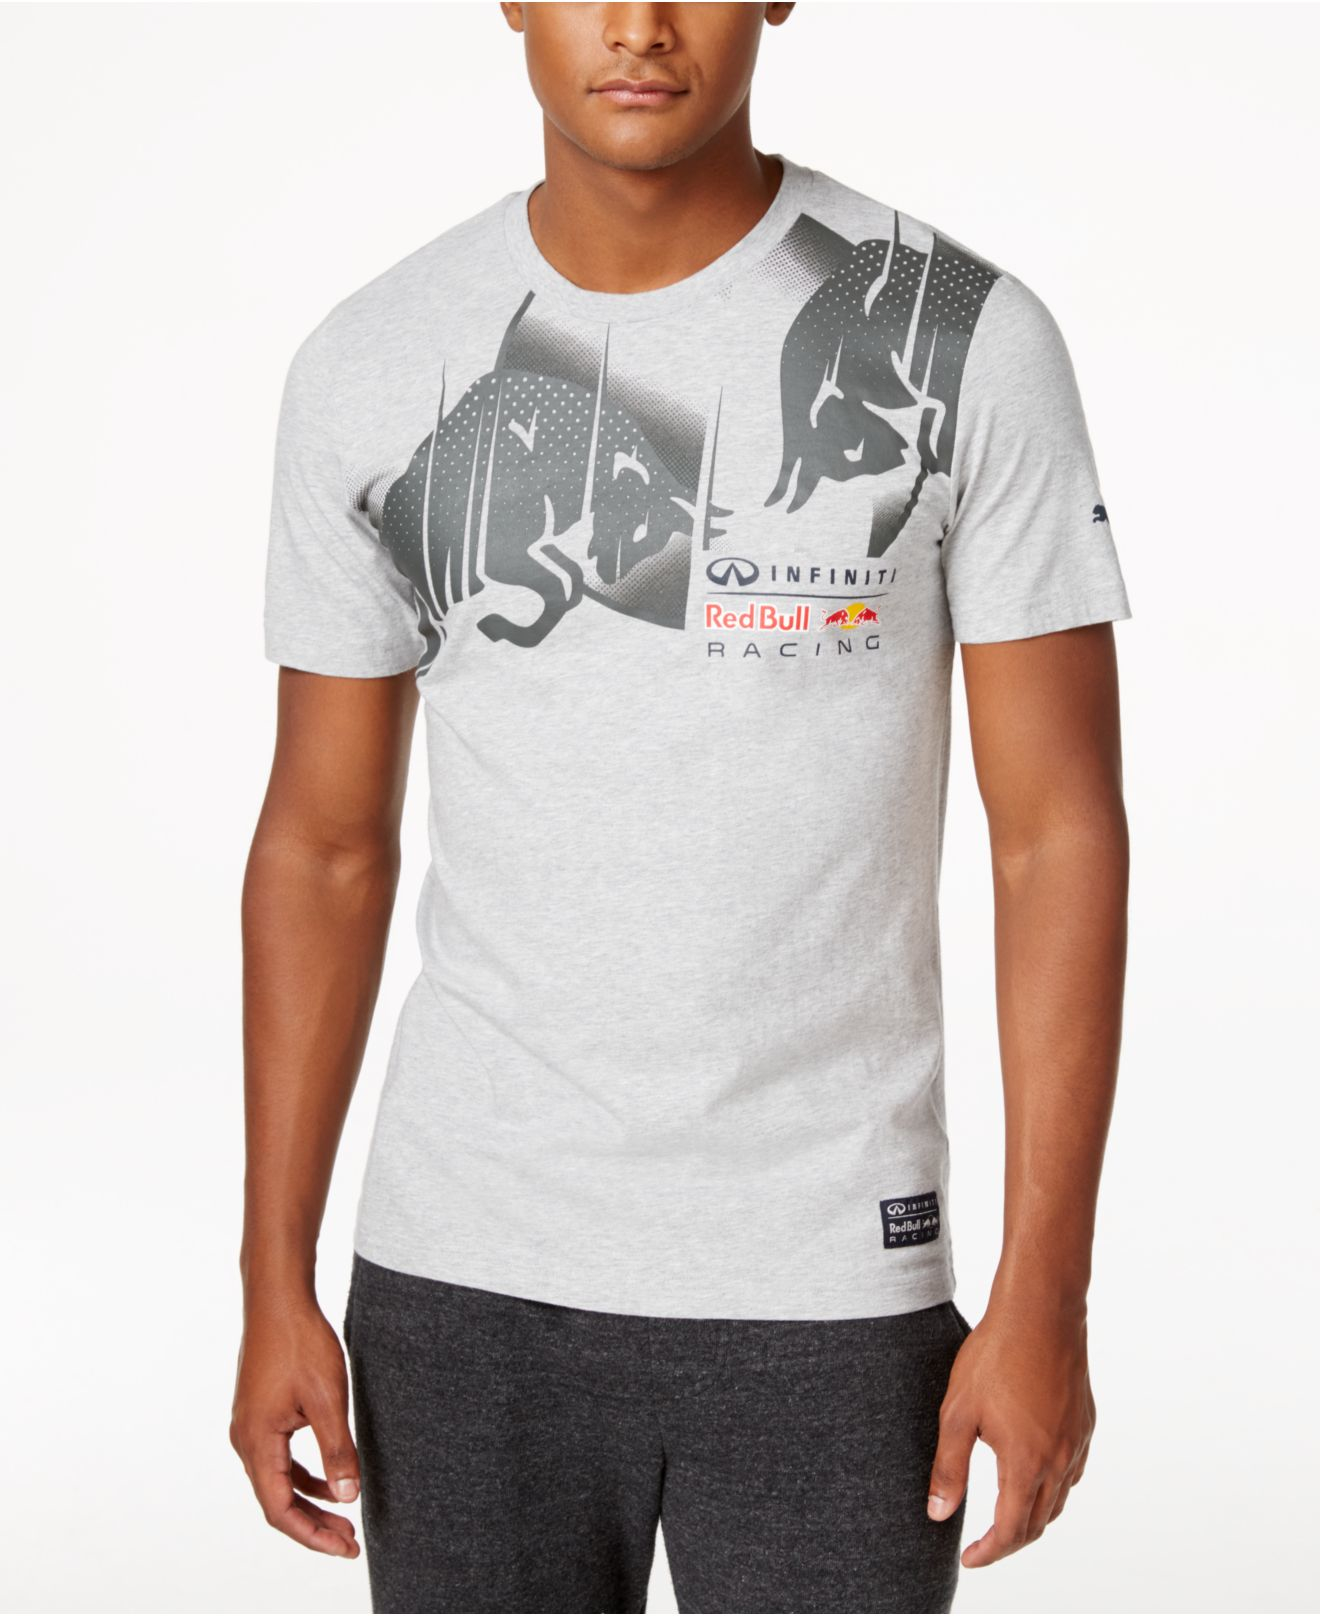 puma men 39 s red bull racing graphic t shirt in green for men lyst. Black Bedroom Furniture Sets. Home Design Ideas